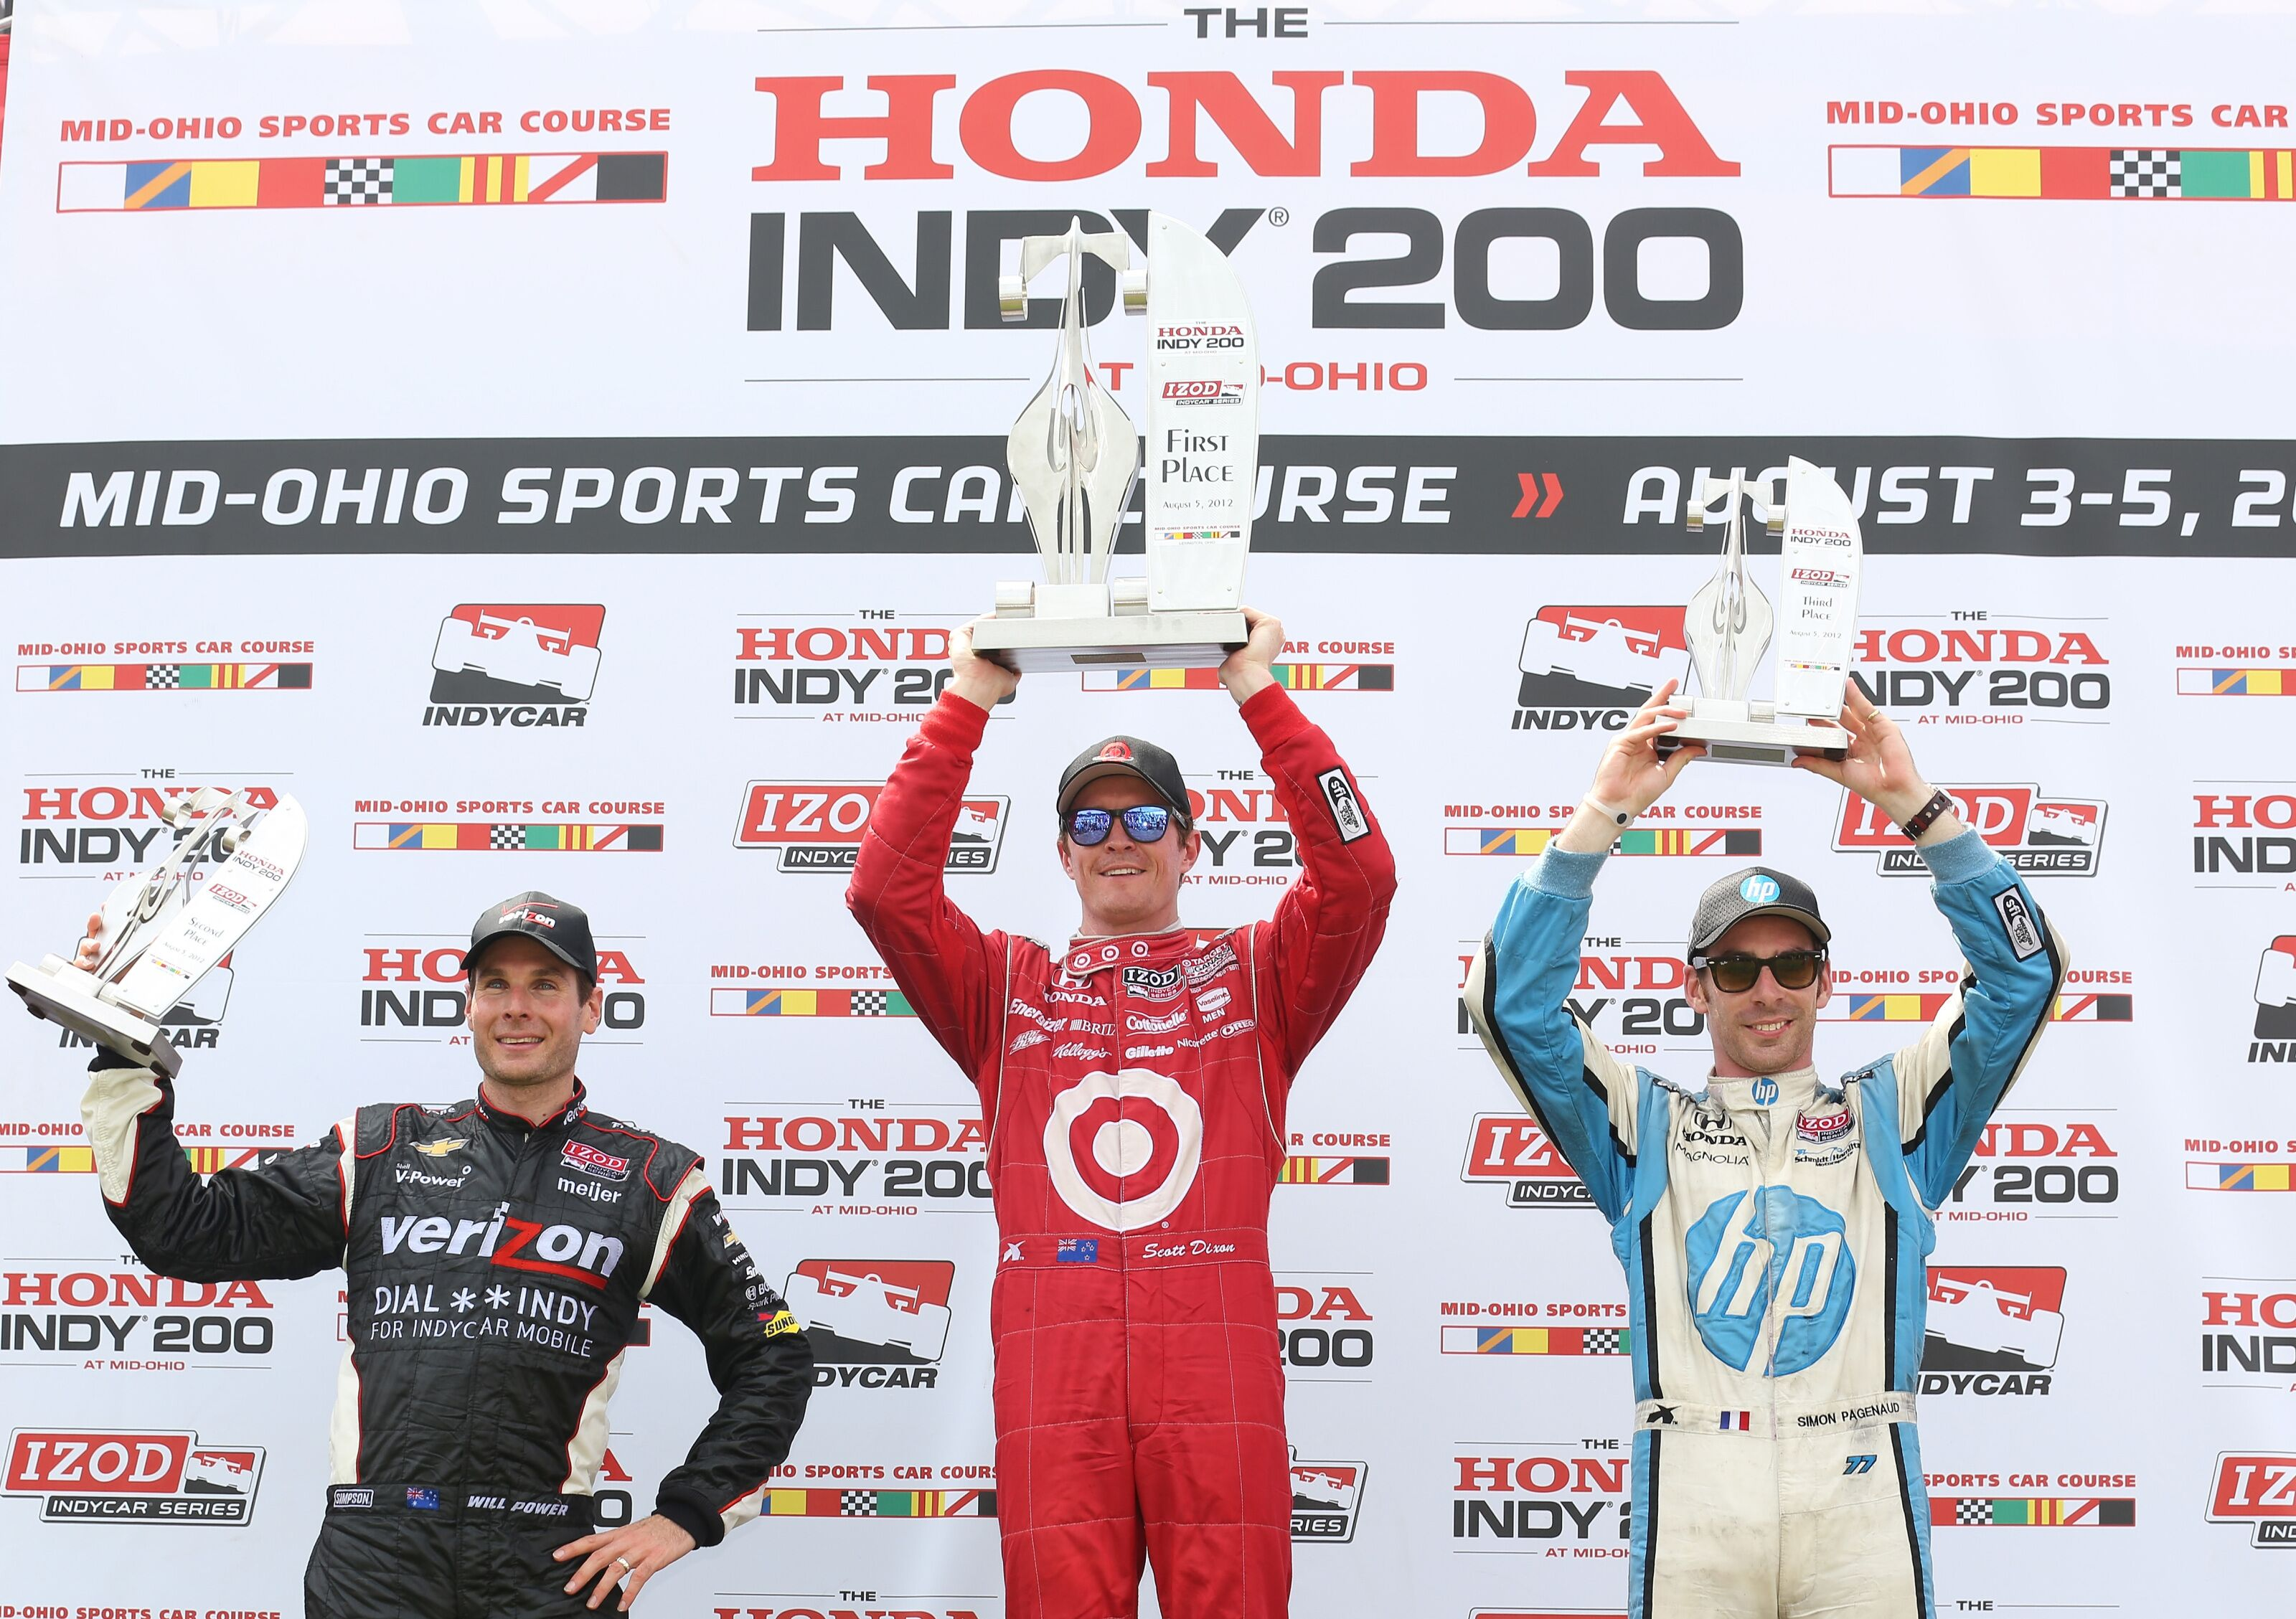 IndyCar: Will Mid-Ohio see 7th different winner in last 7 years?